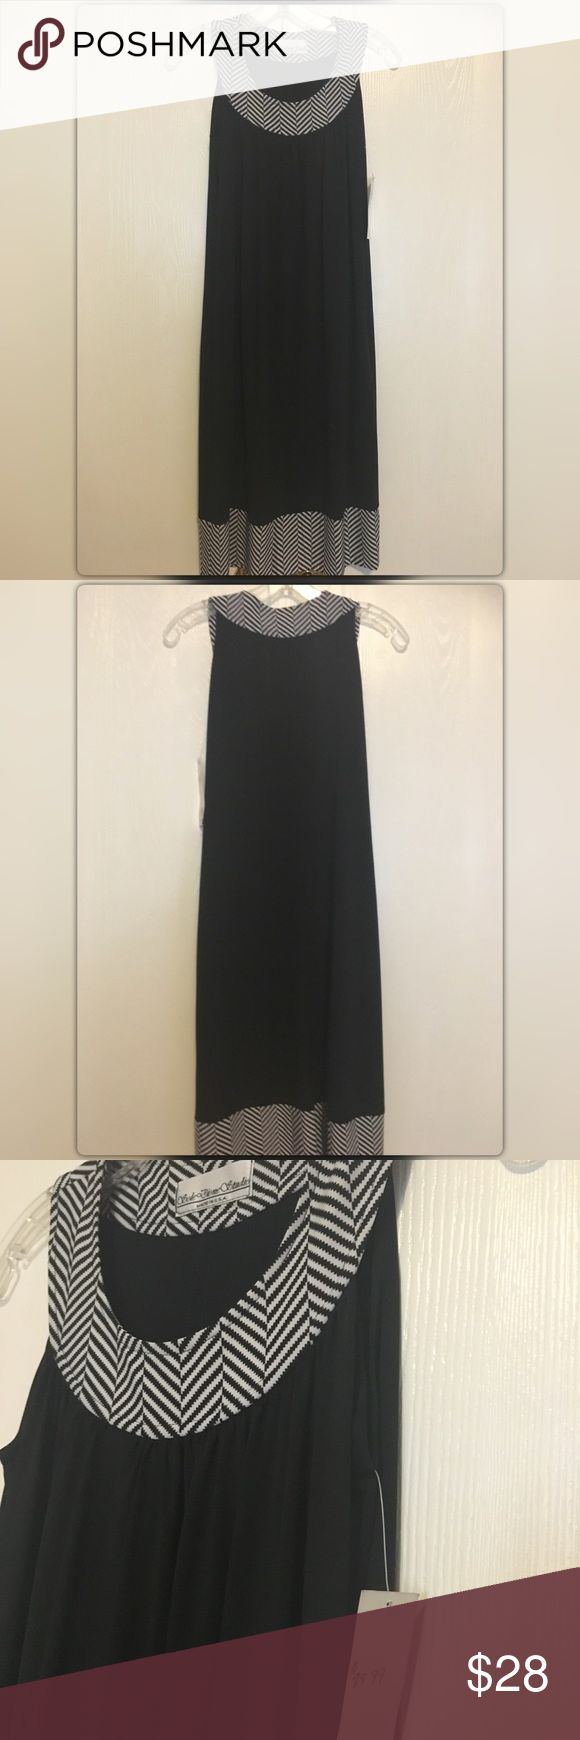 💥🆕💥Sole Dione Studio Black & White Stripe Dress NWT! Sleeveless black jersey midi dress with black/white stripe neck & hem trim/detail!!  Size Small, stretch comfy jersey fabric!!  92% Polyester, 8% Lycra. Wear as a dress or as a tunic with leggings!! Dress up or down!! And this dress has pockets!! Purchased from a boutique and forgot I had it, never worn!! Grab this!! Sole Dione Studio Dresses Midi